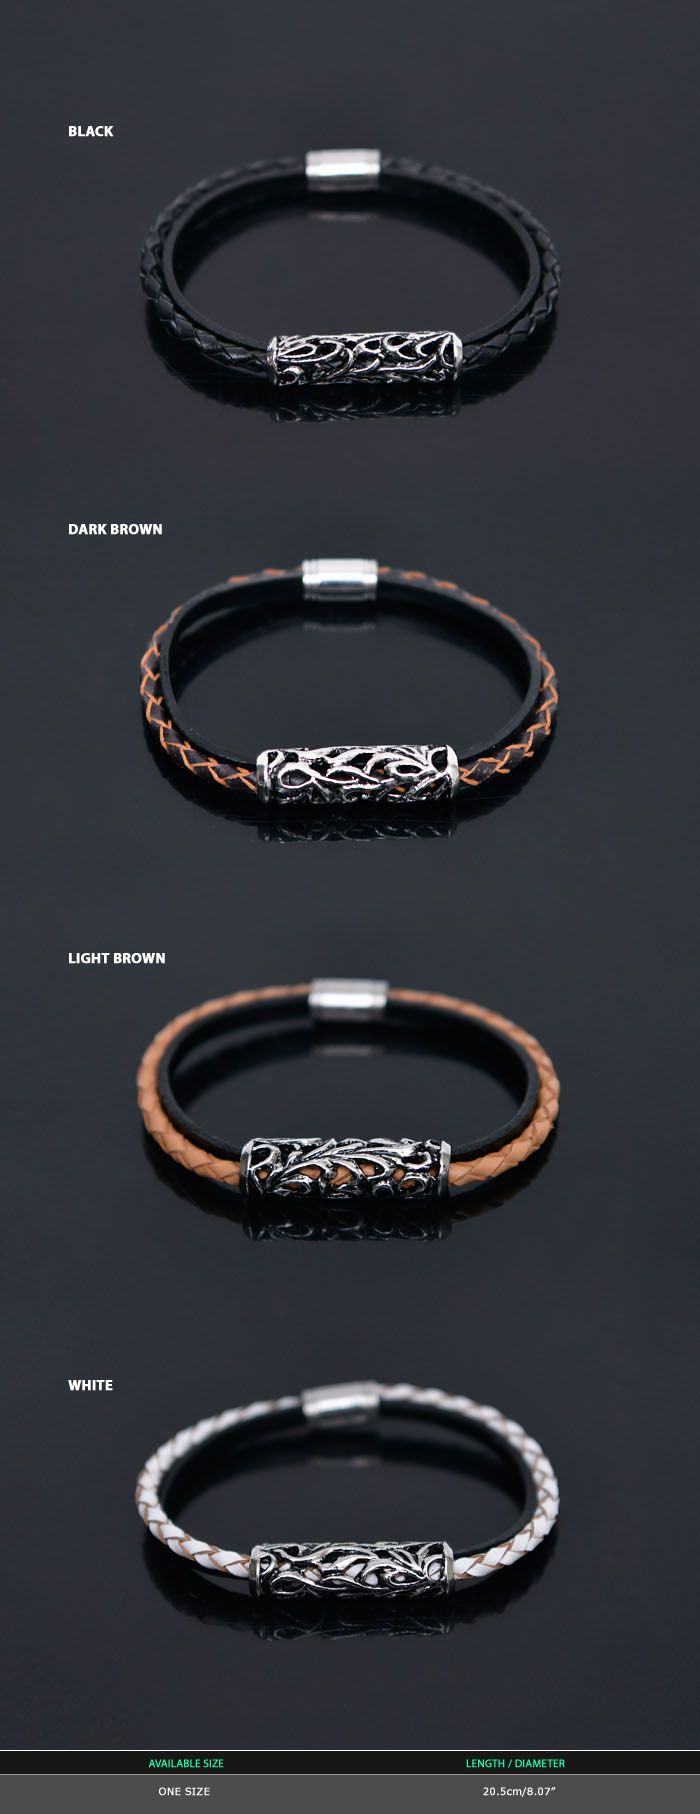 Braided Leather Magnetic Cuffbracelet 316  Guylook